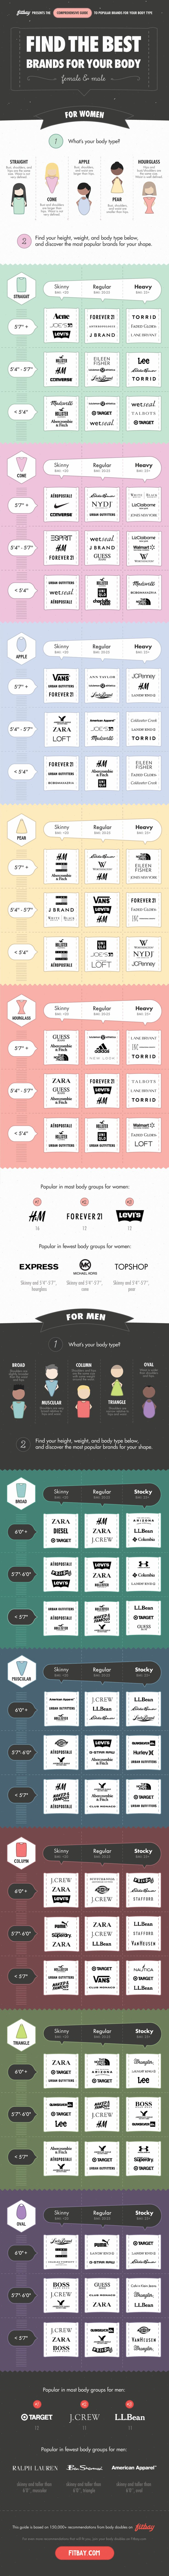 This Graphic Recommends the Best Clothing Brands for Your Body Type